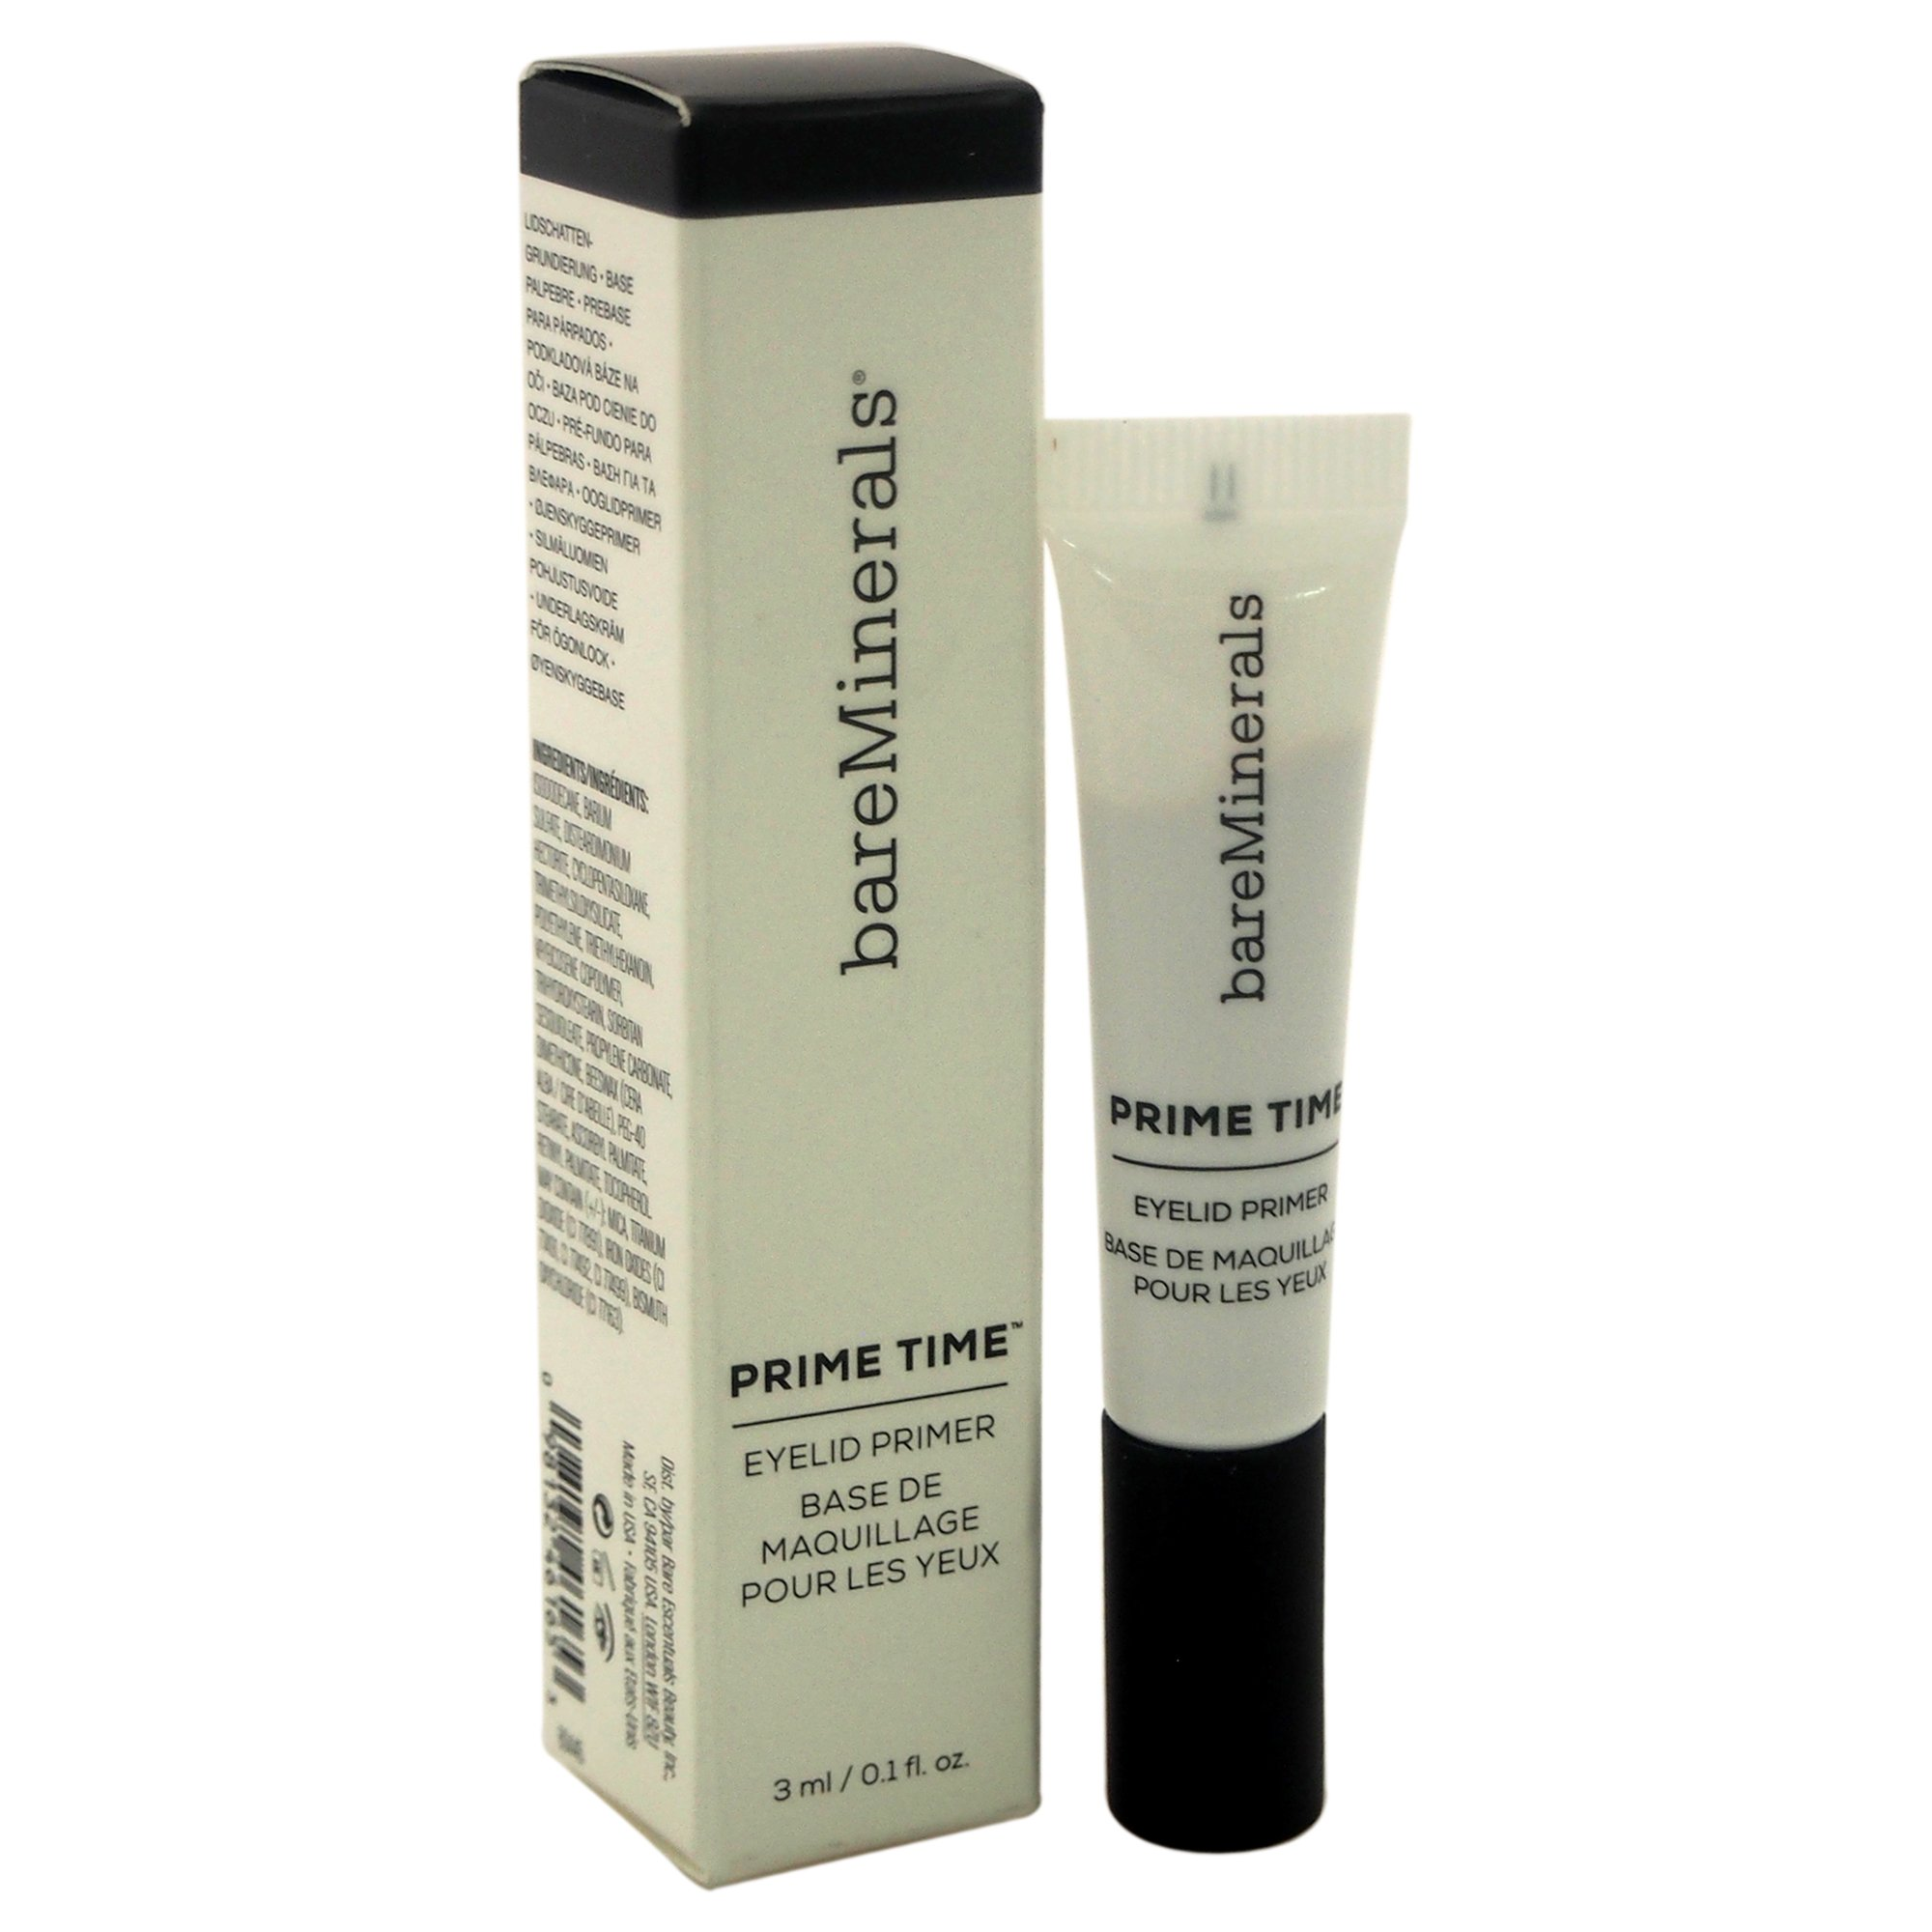 bareMinerals Prime Time Eyelid Primer for Women, 0.1 Ounce